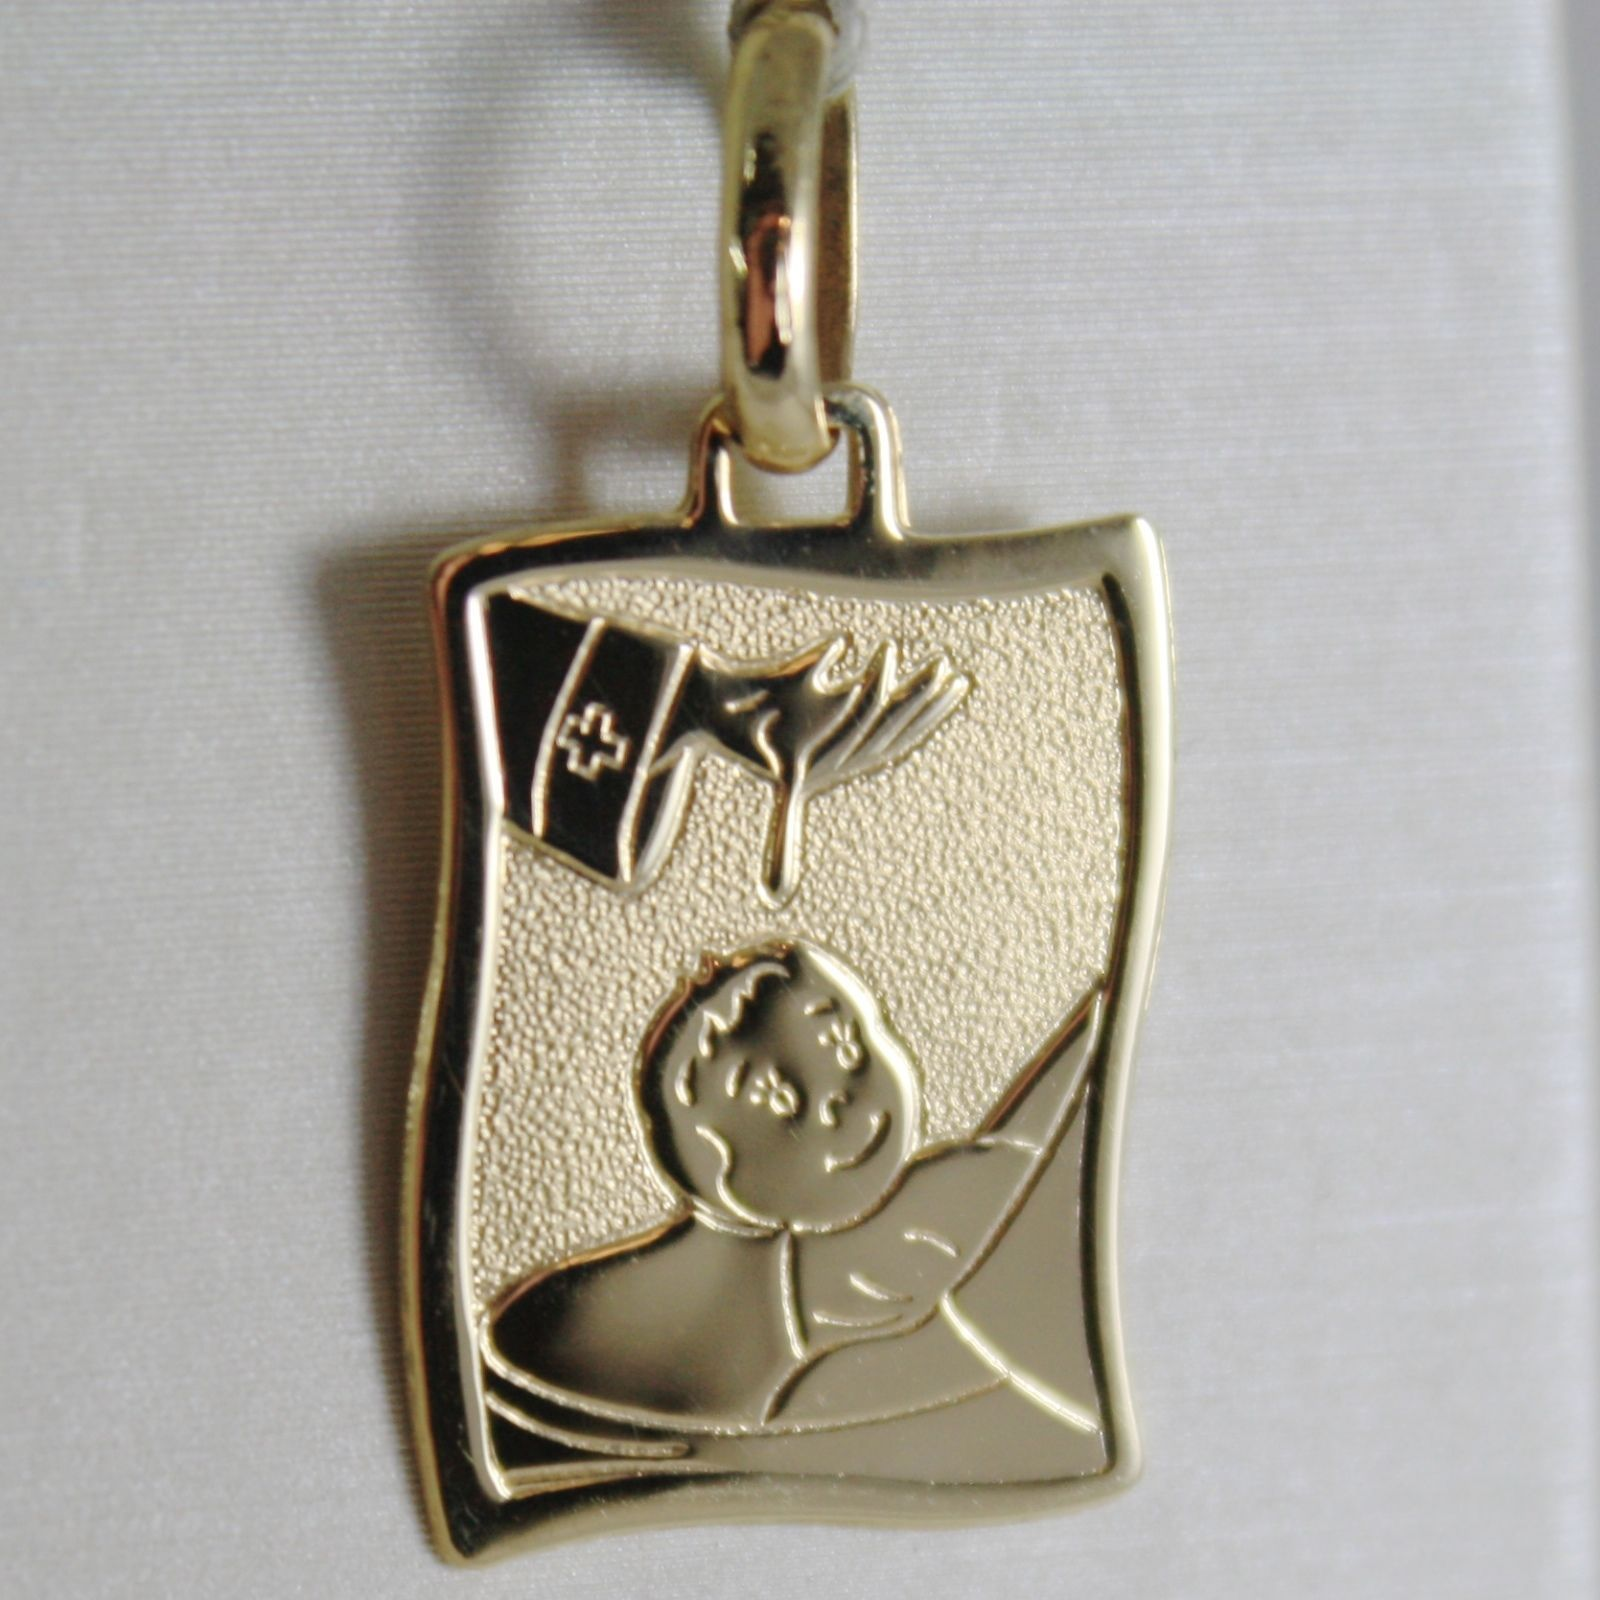 18K YELLOW GOLD SQUARE MEDAL REMEMBRANCE OF BAPTISM ENGRAVABLE MADE IN ITALY